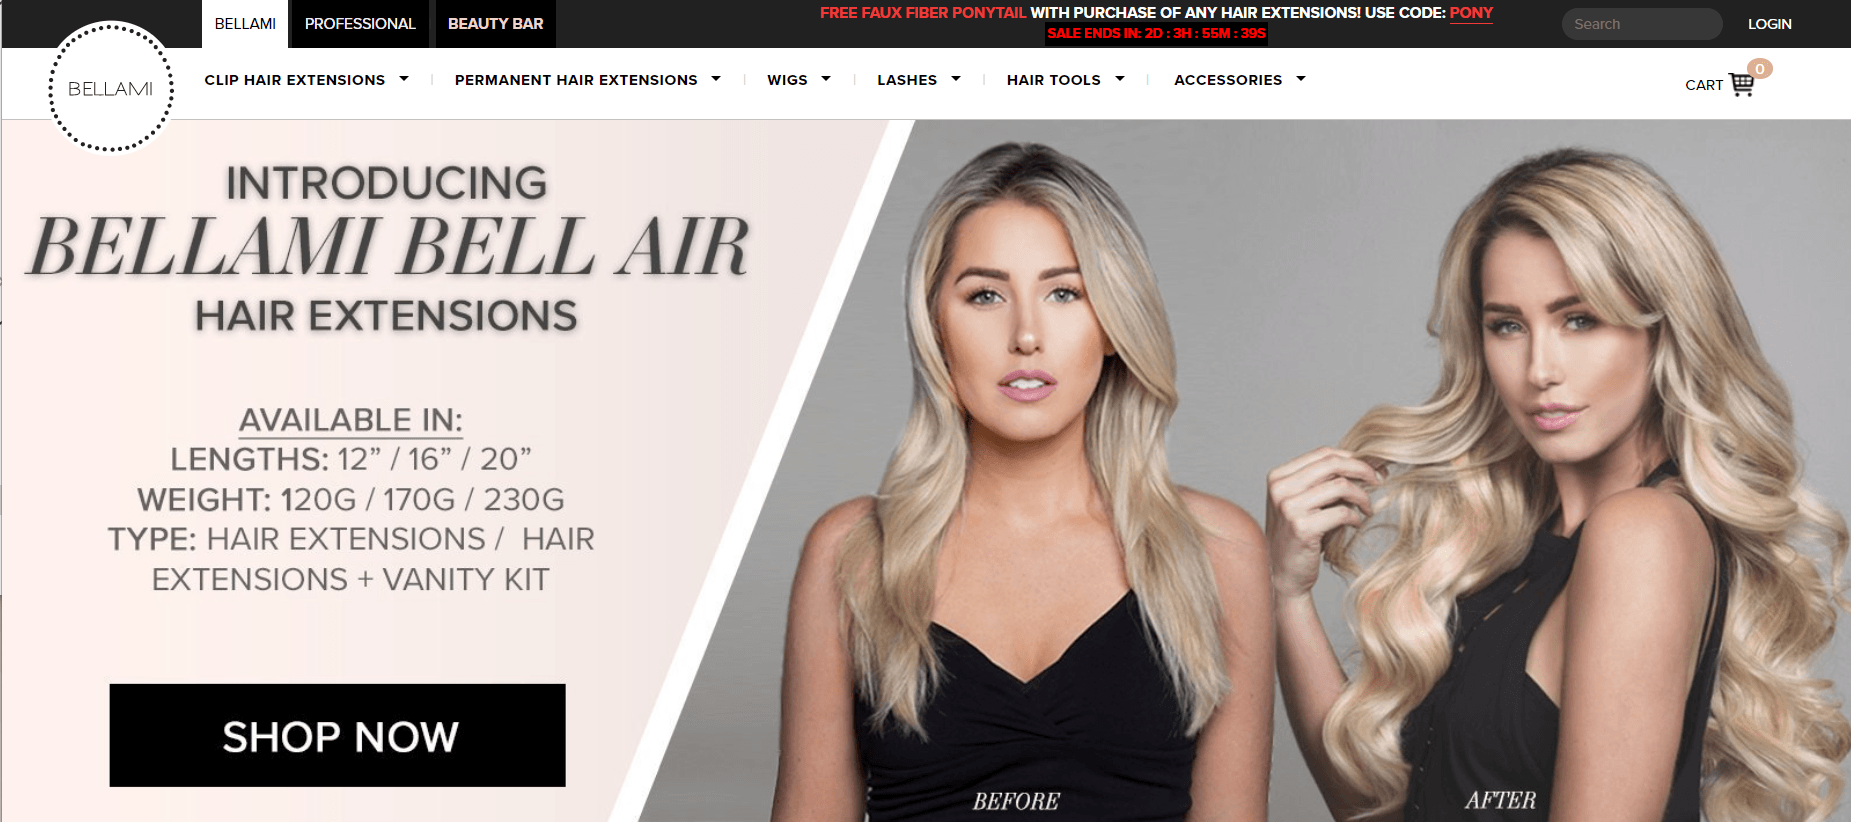 This screenshot from the Bellami Hair website shows before and after images of a woman with hair extensions.